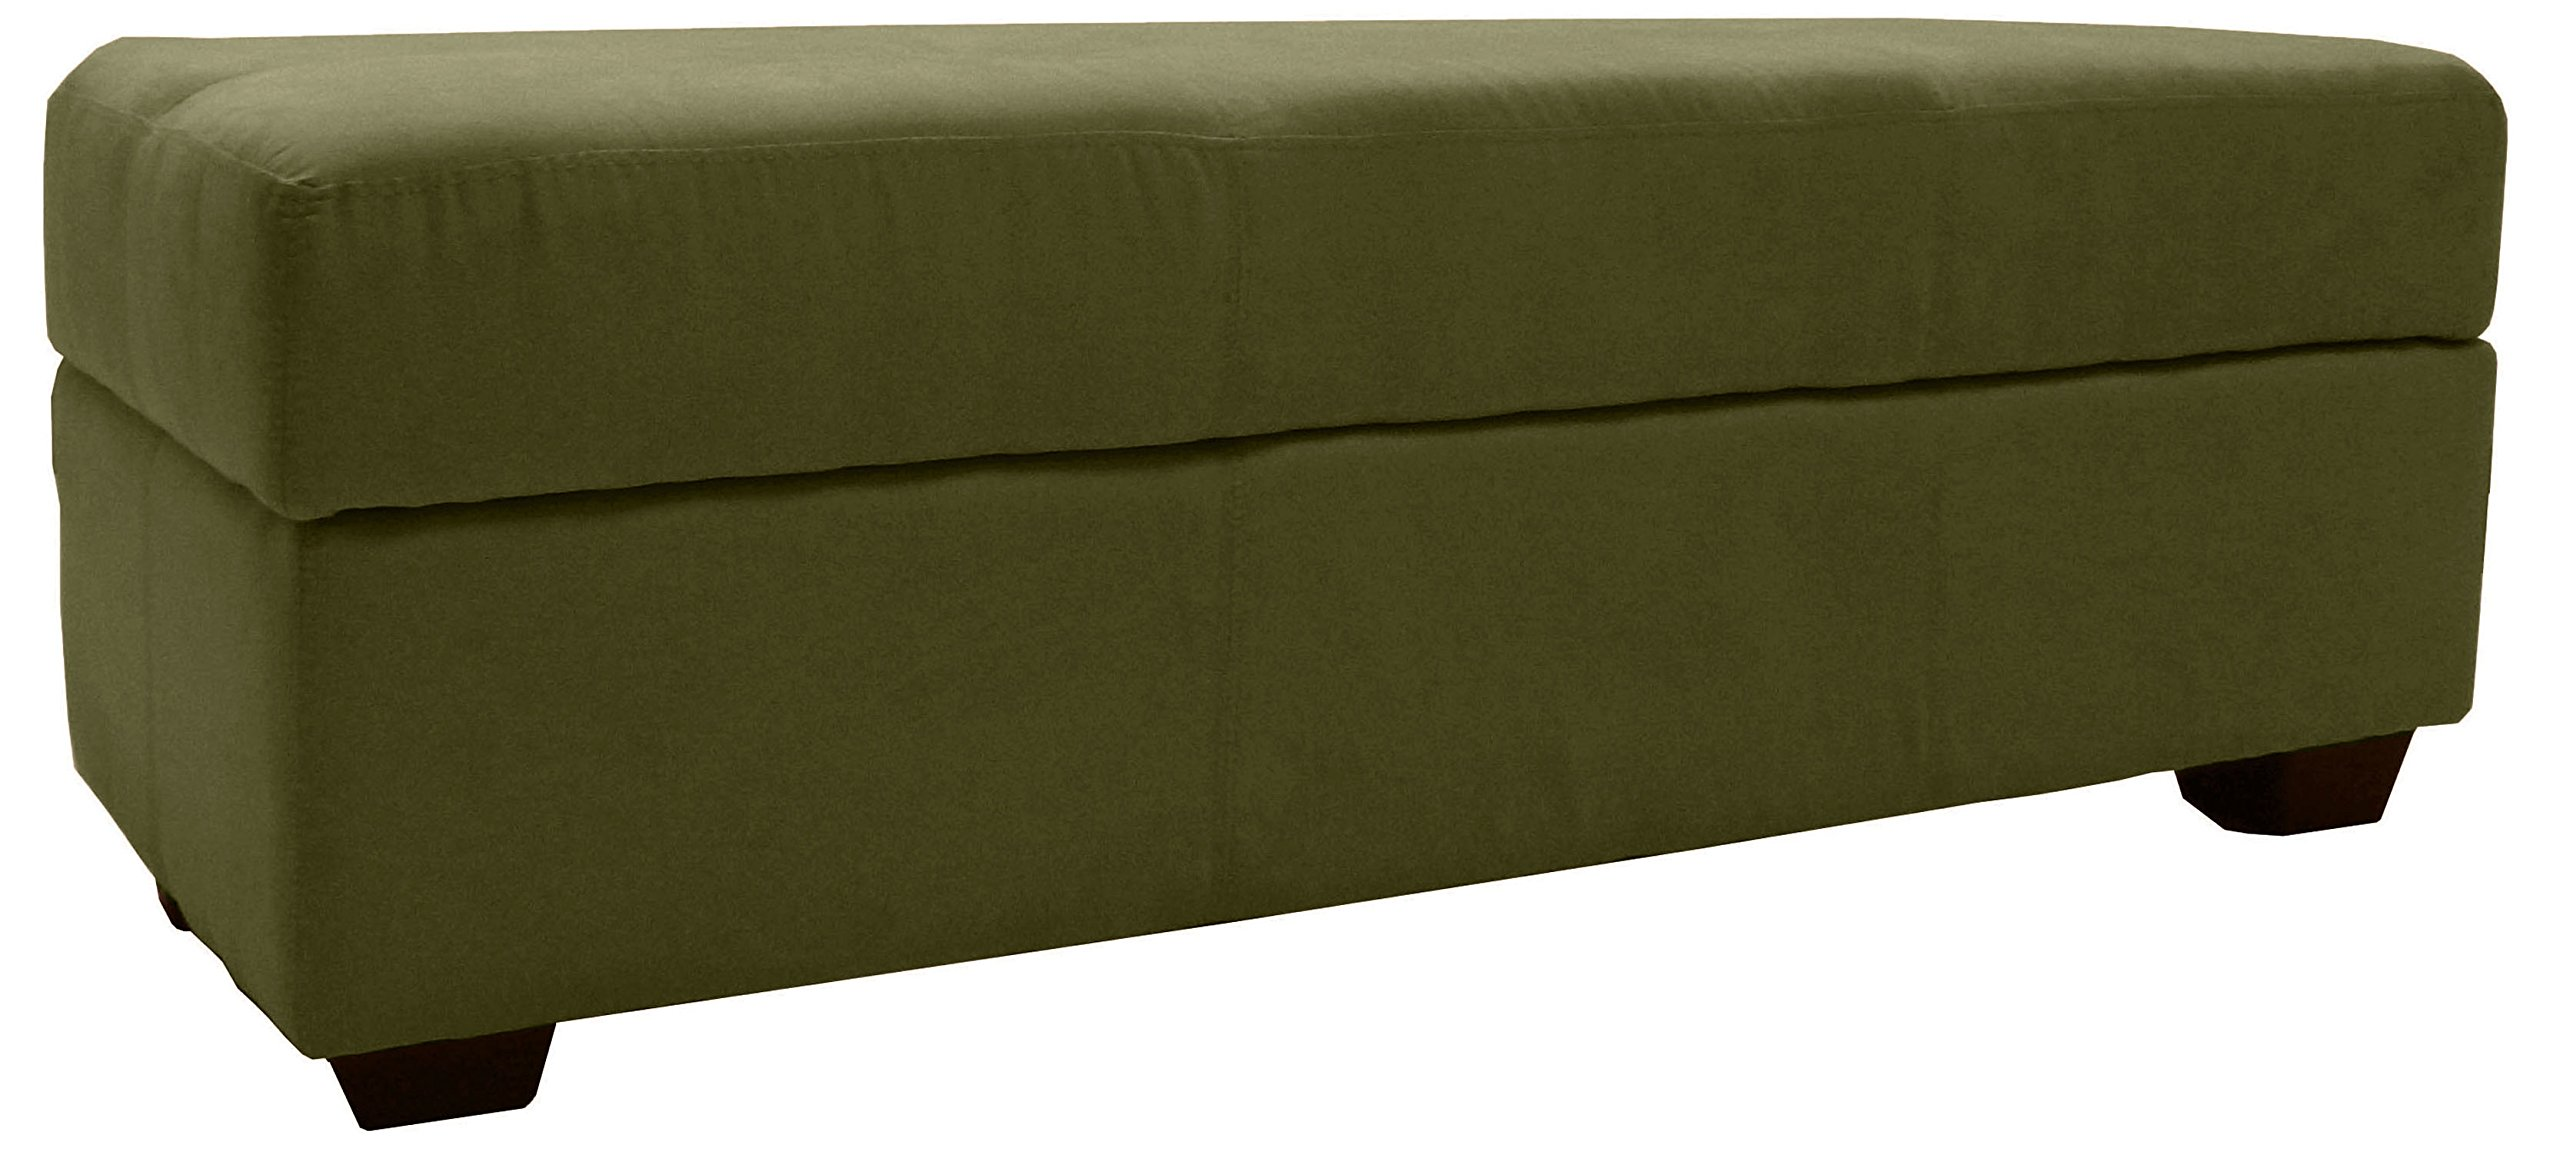 Epic Furnishings Microfiber Suede Upholstered Tufted Padded Hinged Storage Ottoman Bench, 48 by 19 by 18'', Olive Green